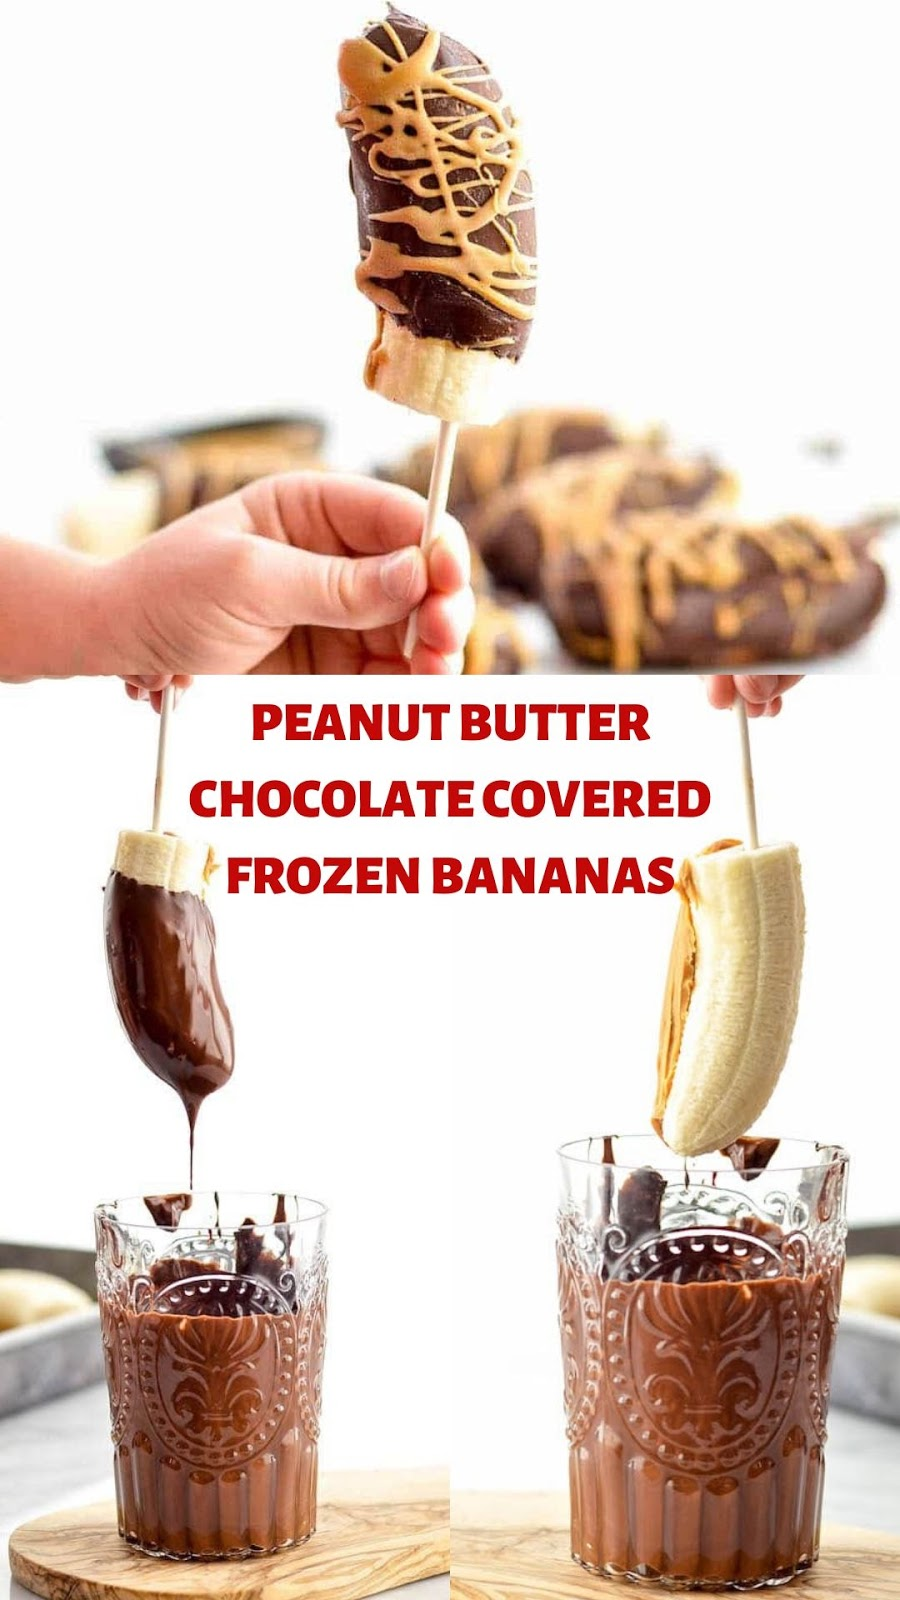 PEANUT BUTTER CHOCOLATE COVERED FROZEN BANANAS